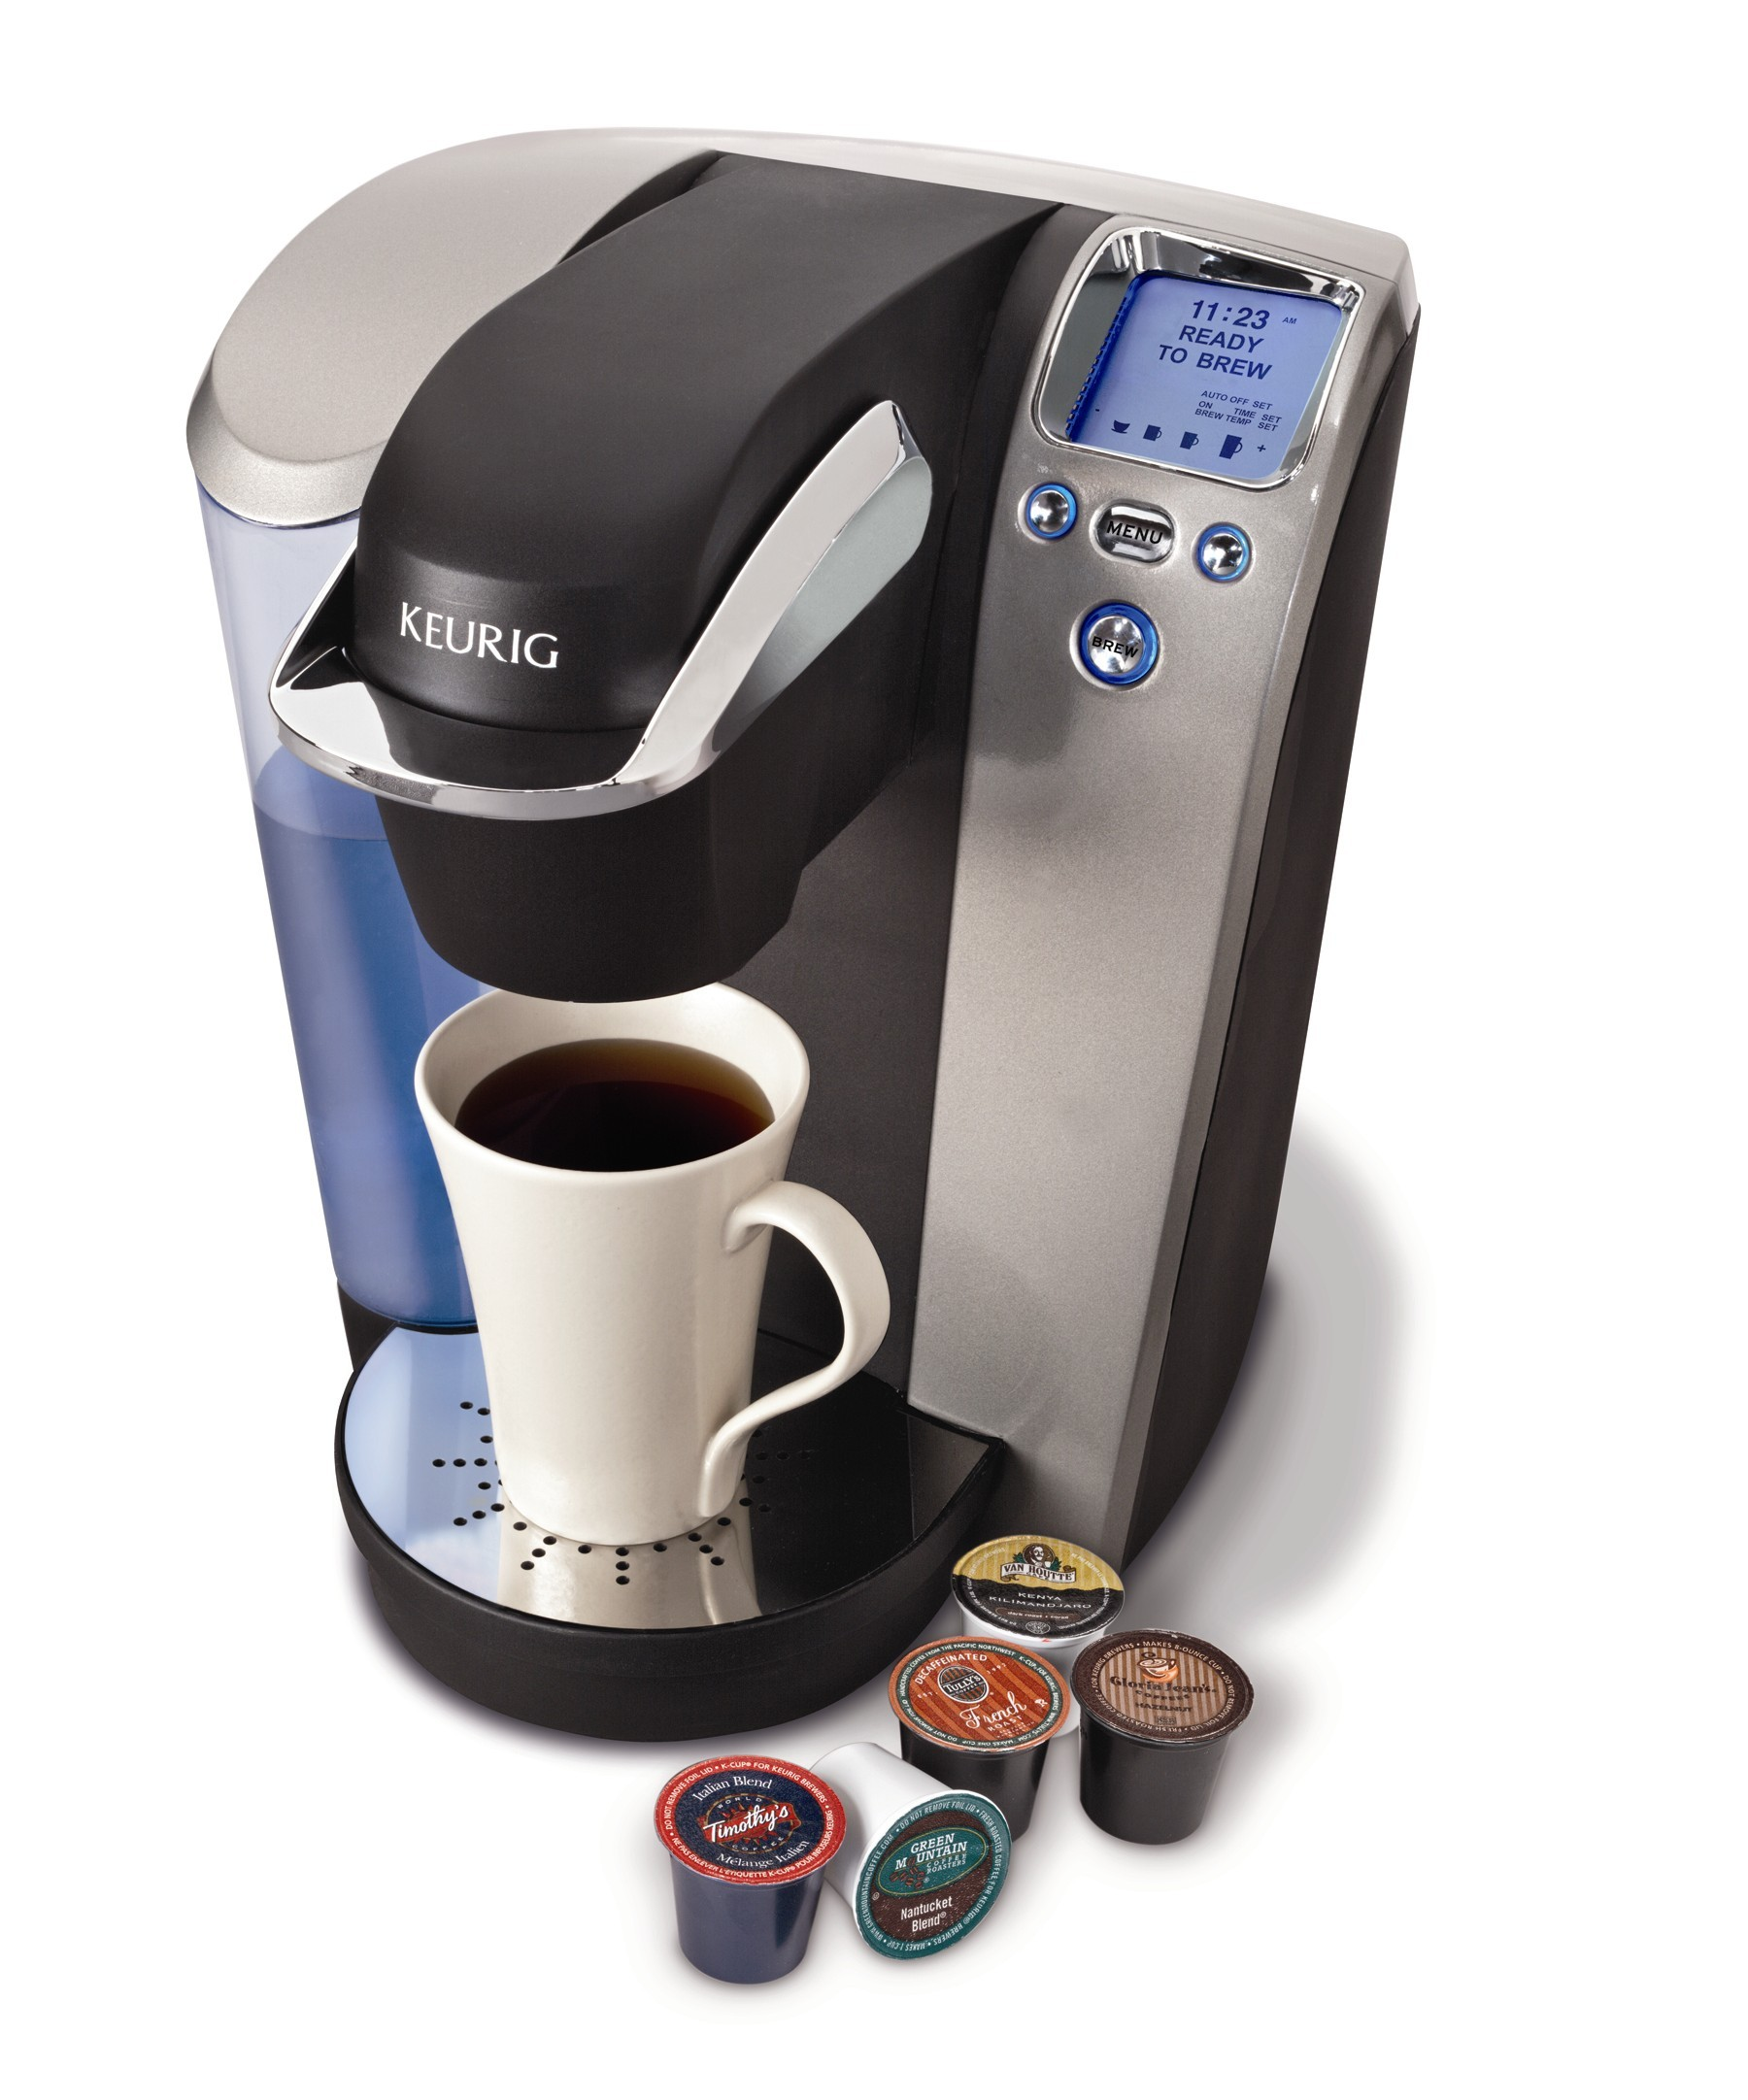 http://markp427.files.wordpress.com/2013/01/keurig_platinum.jpg